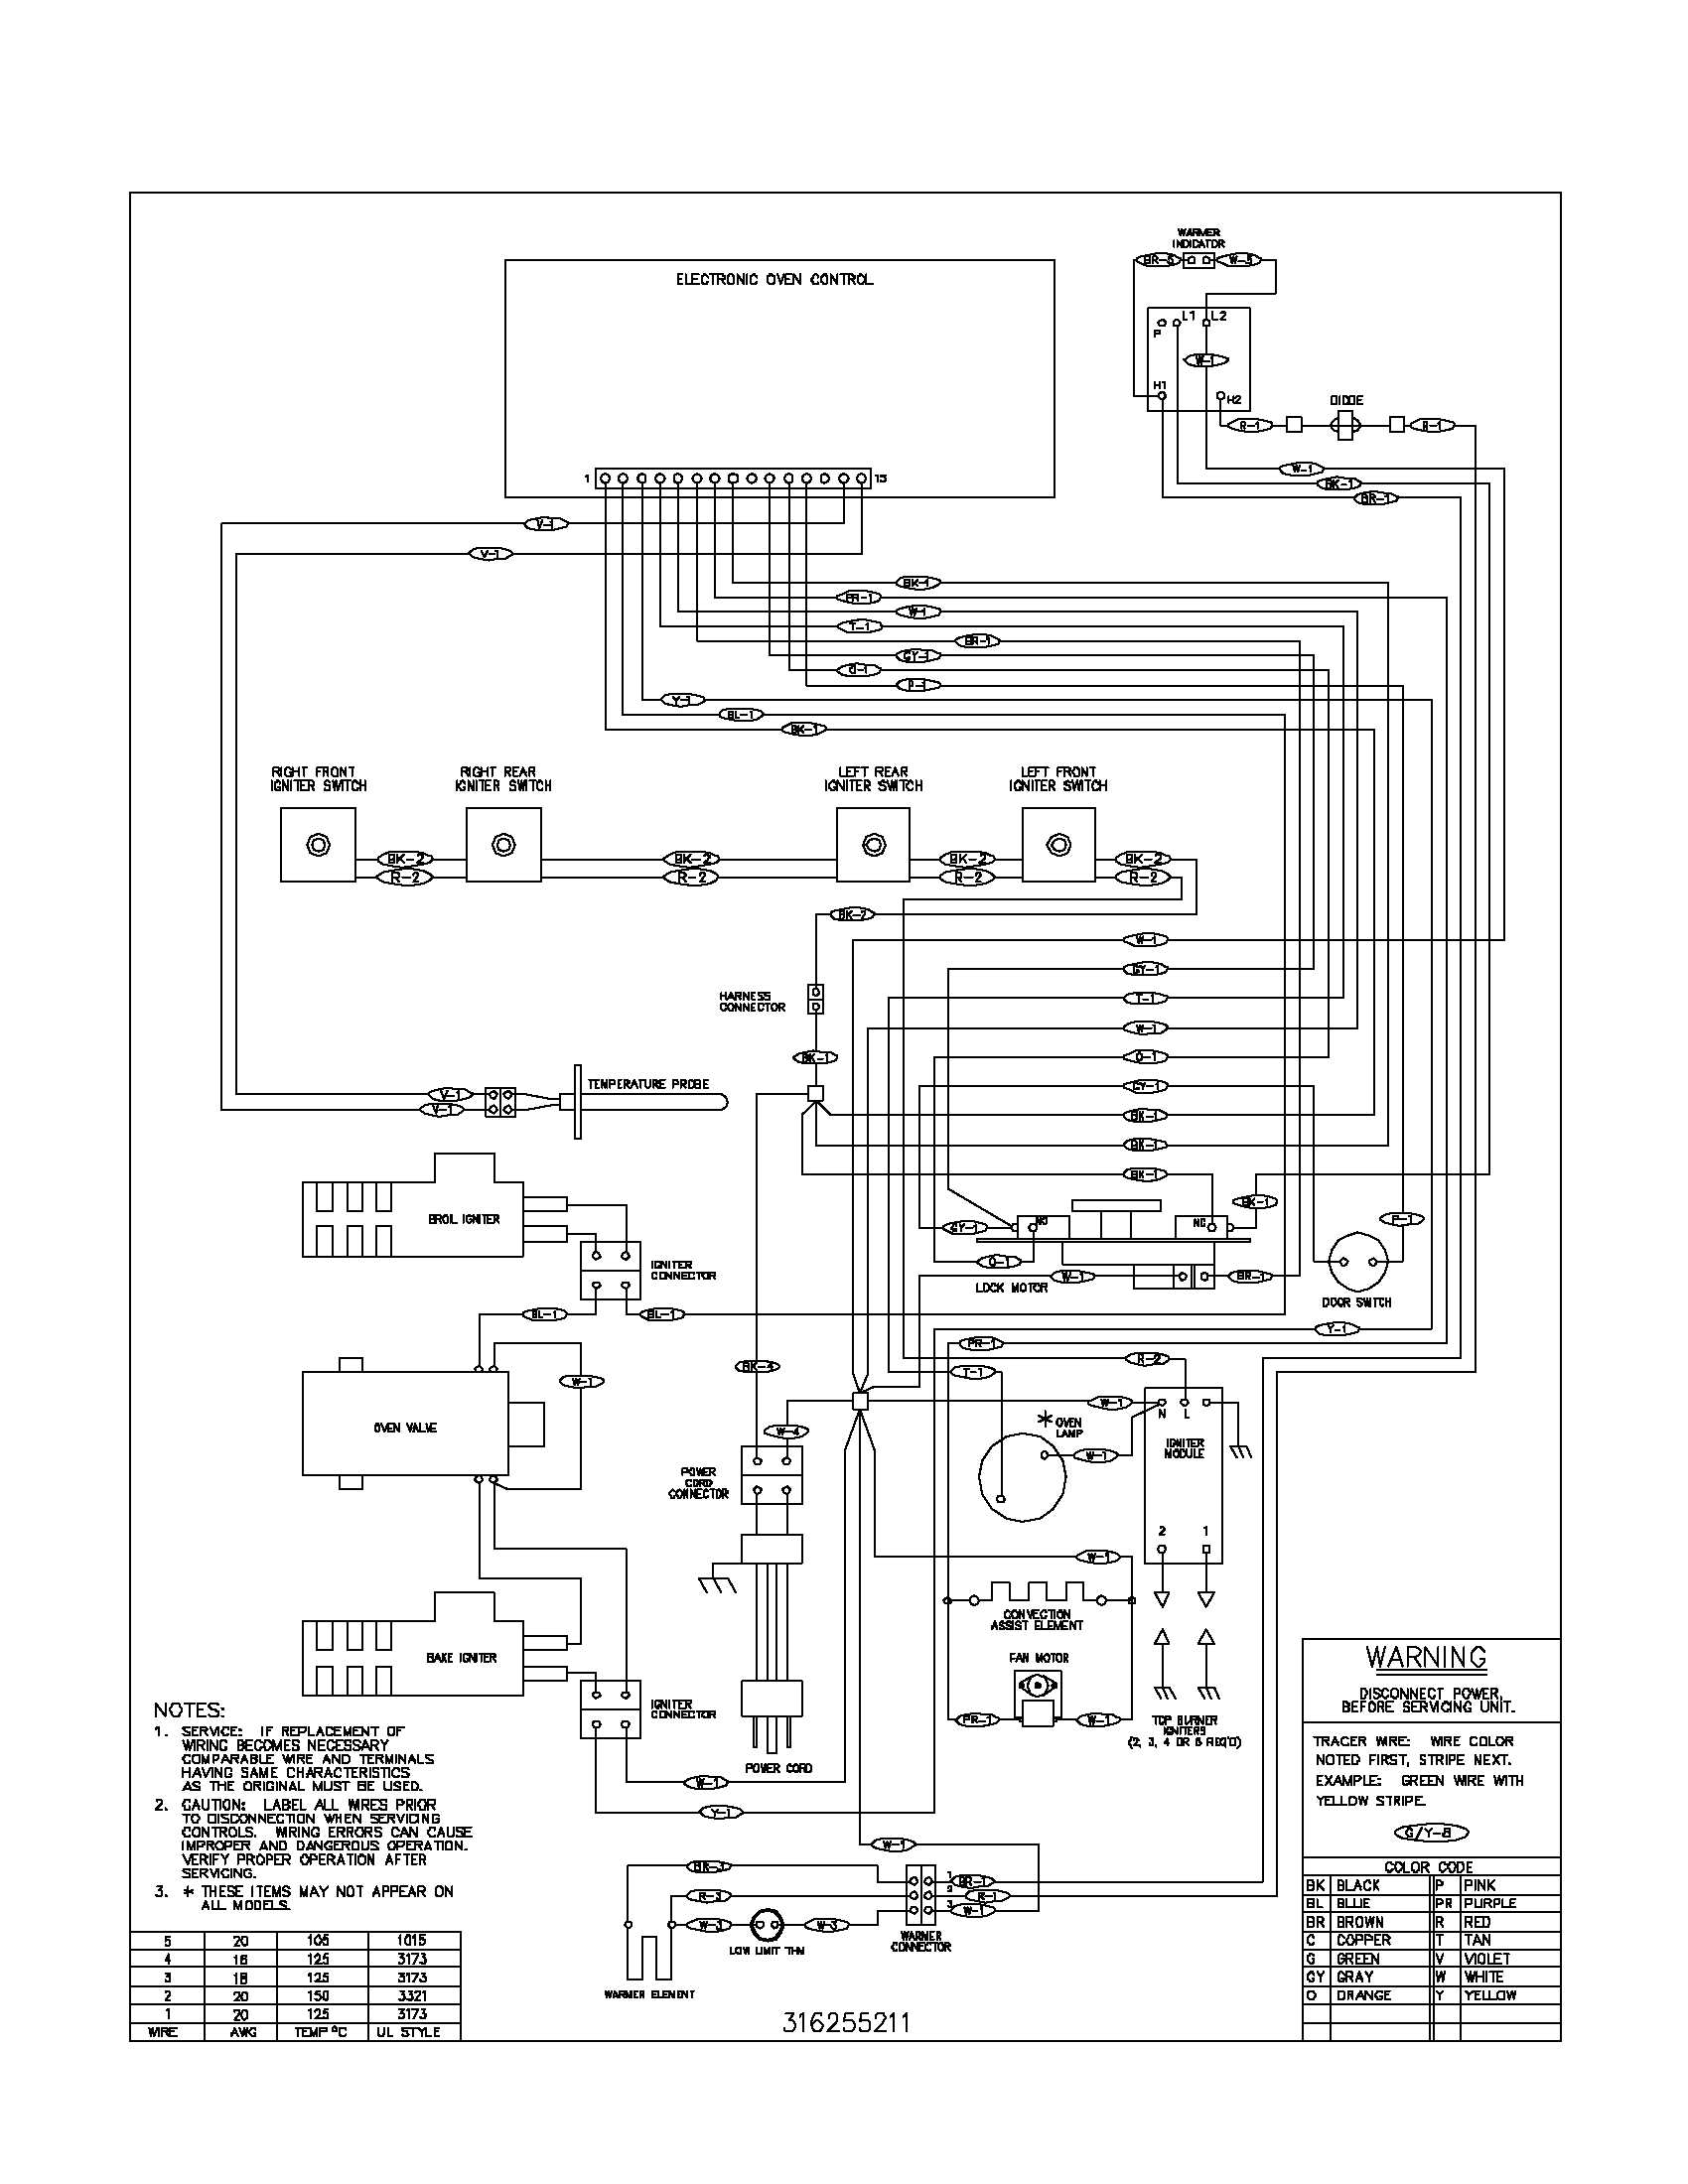 Kubota 2600 Wiring Diagram Library Schematic Pdf Image Collections Sample And Furthermore Rtv Work Light